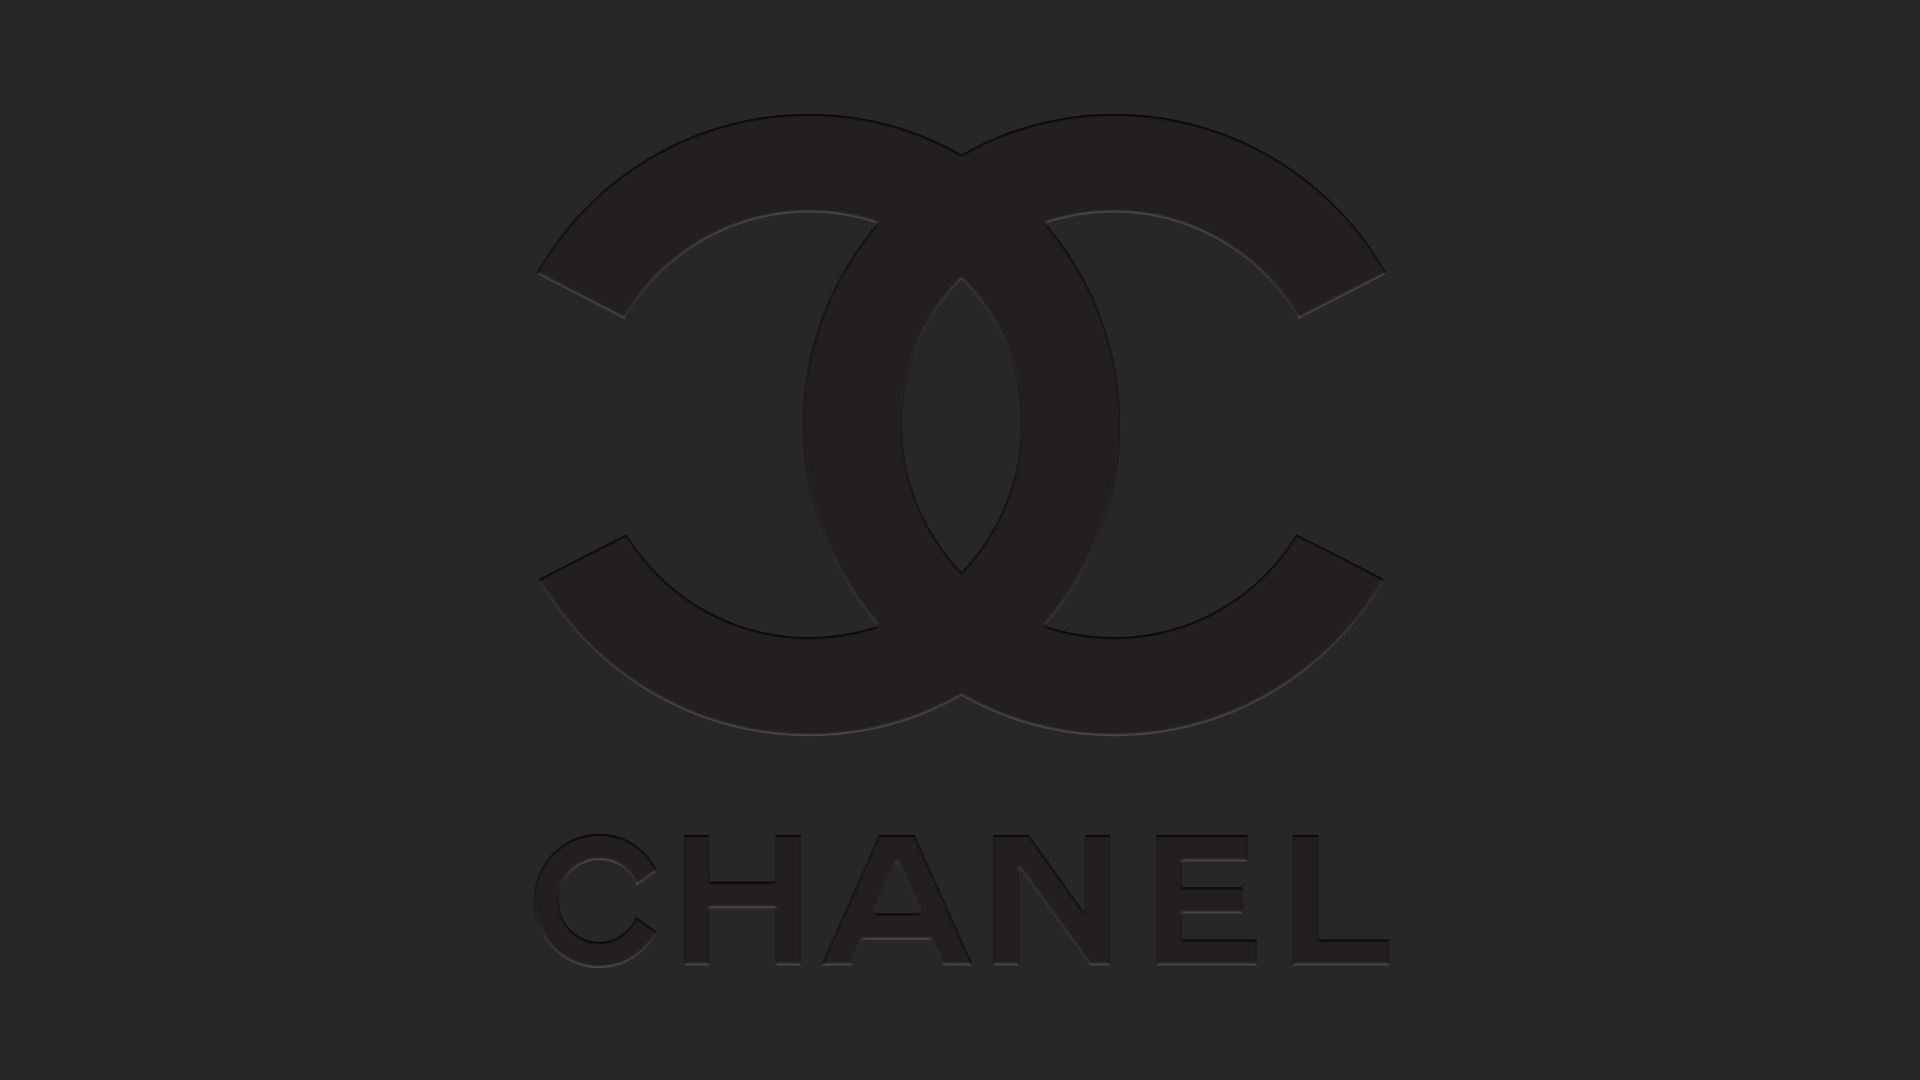 Coco Chanel Quotes Iphone Wallpaper Chanel Logo Wallpaper 65 Images